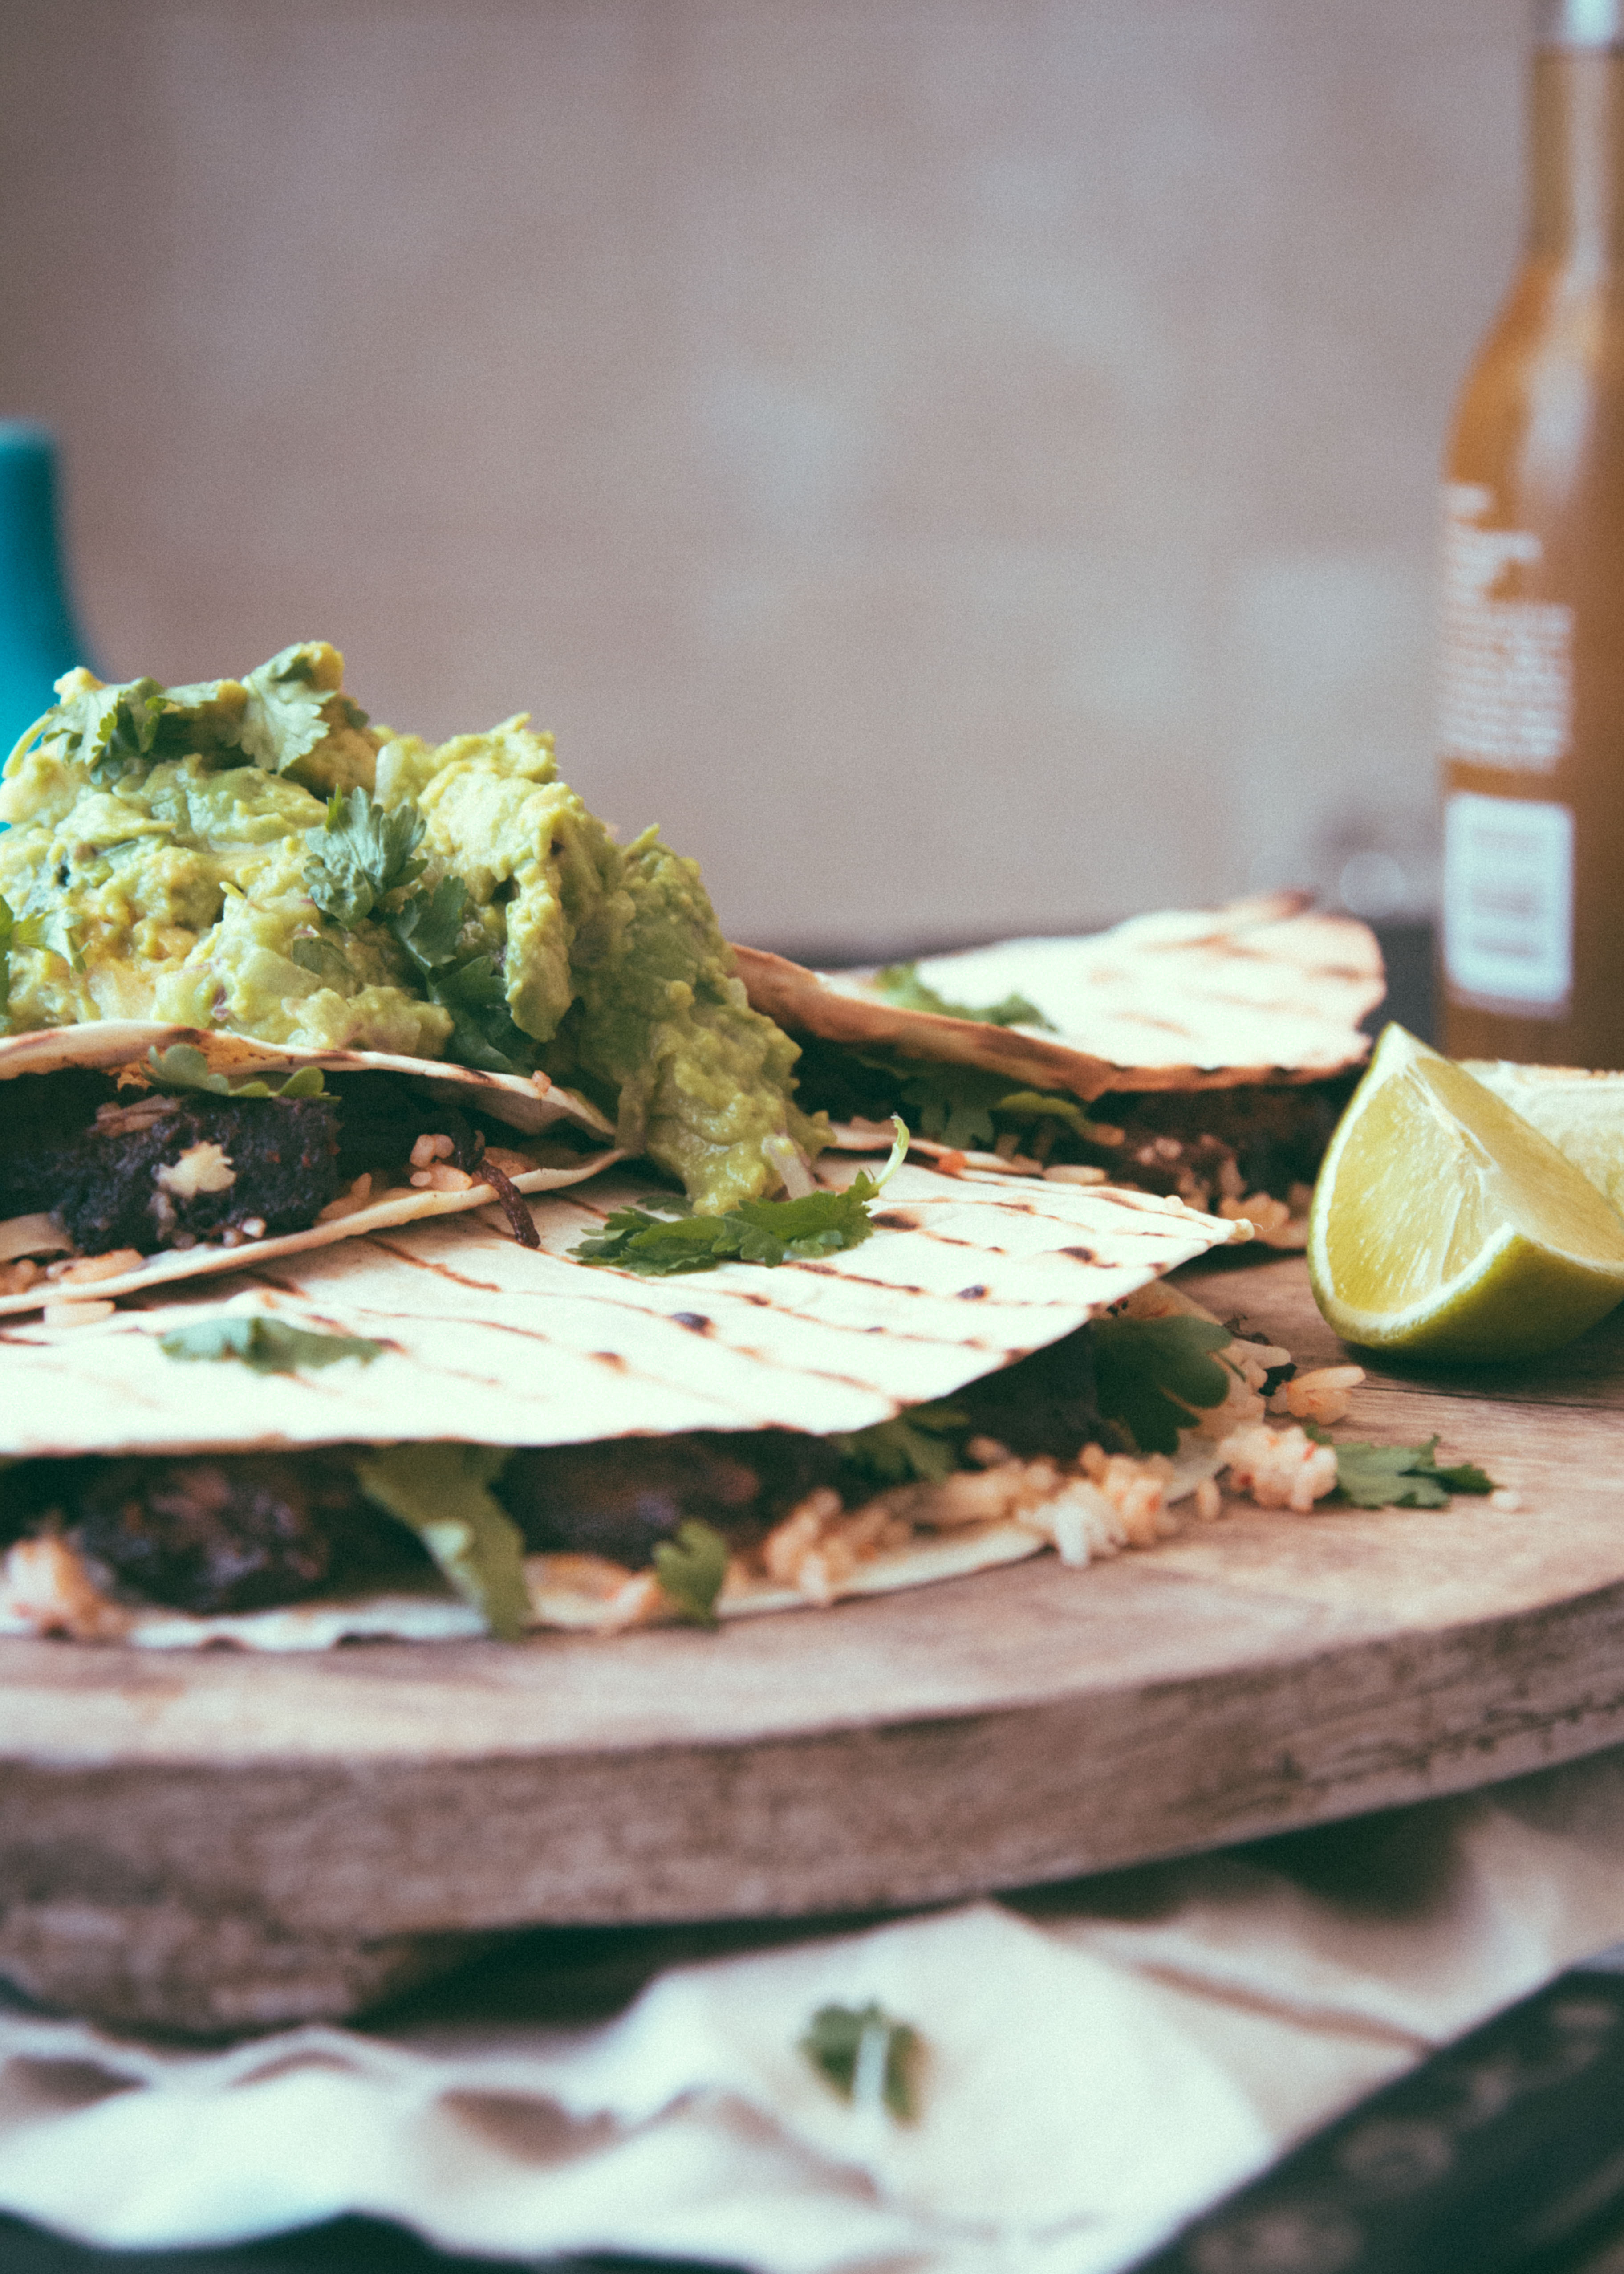 Rice and Beef Cheek Quesadilla with Lime Guacamole.